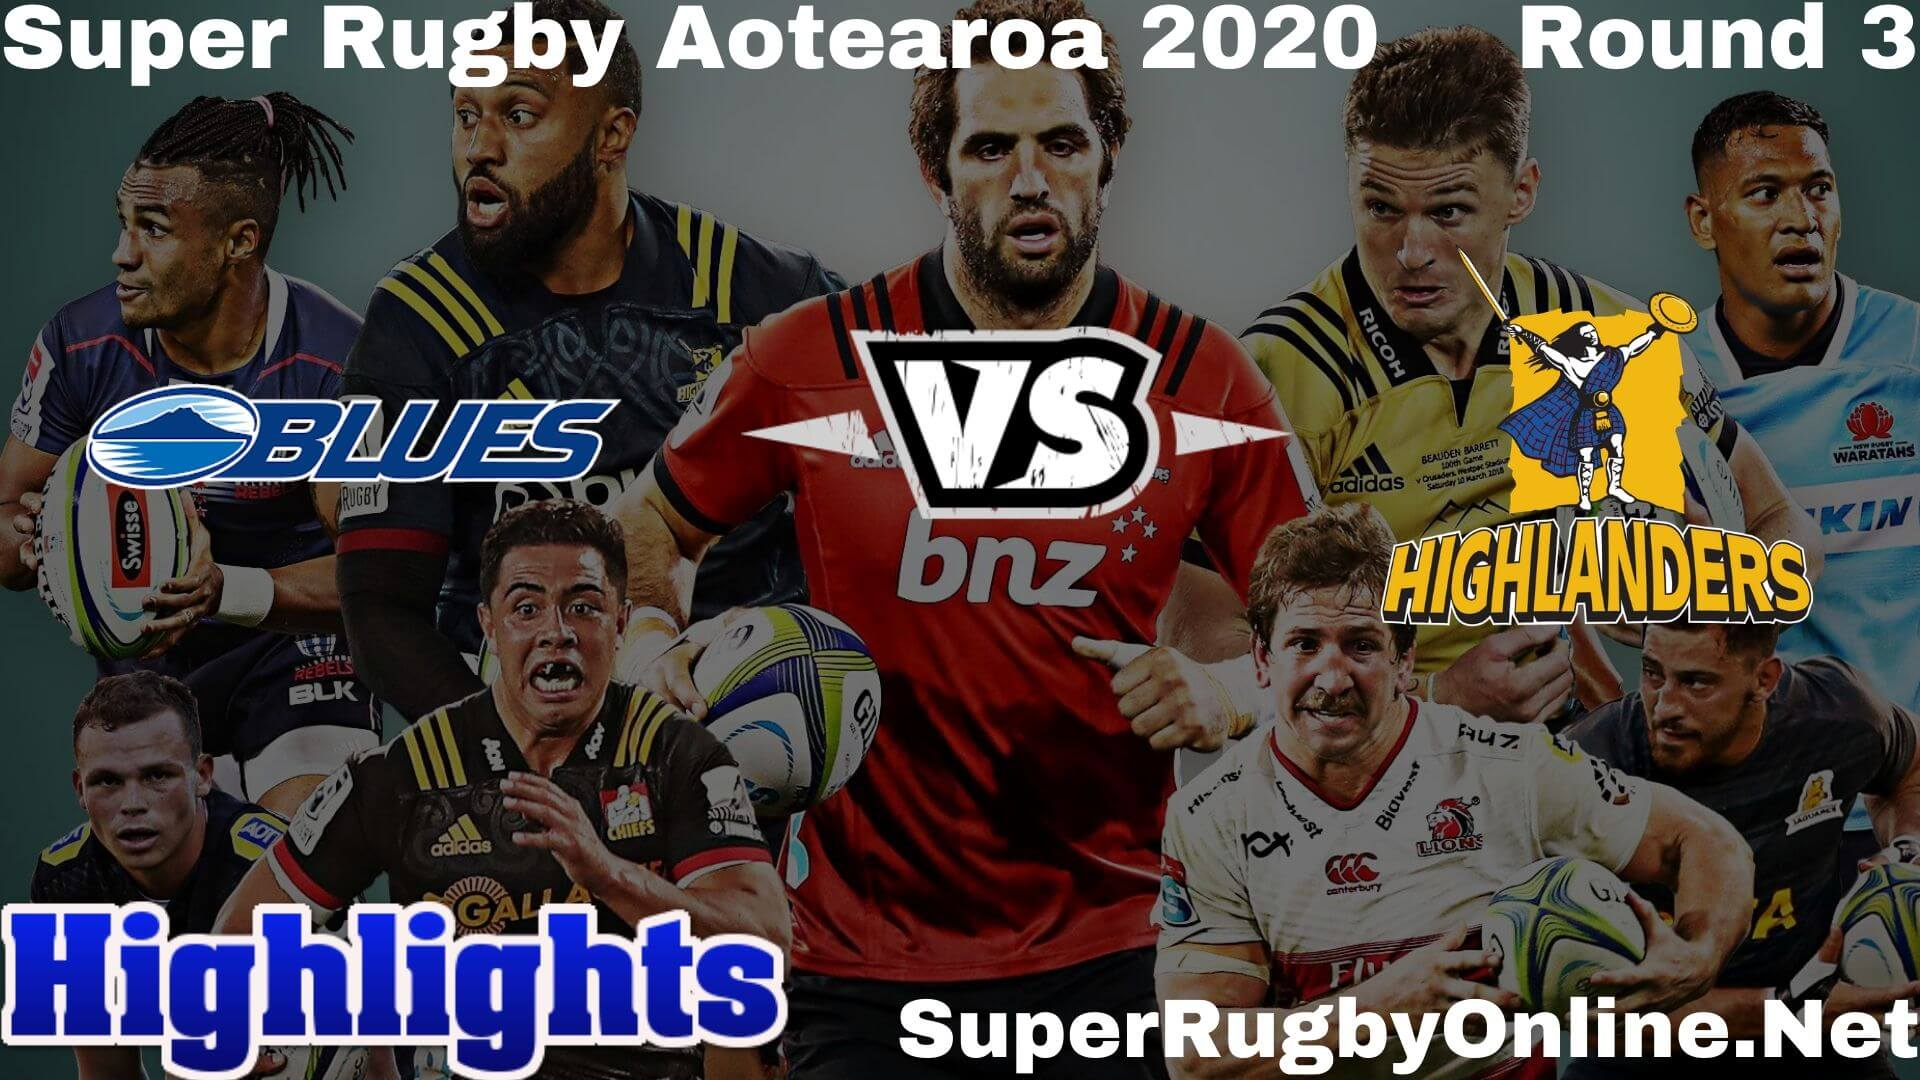 Blues Vs Highlanders Highlights 2020 Rd 3 Super Rugby